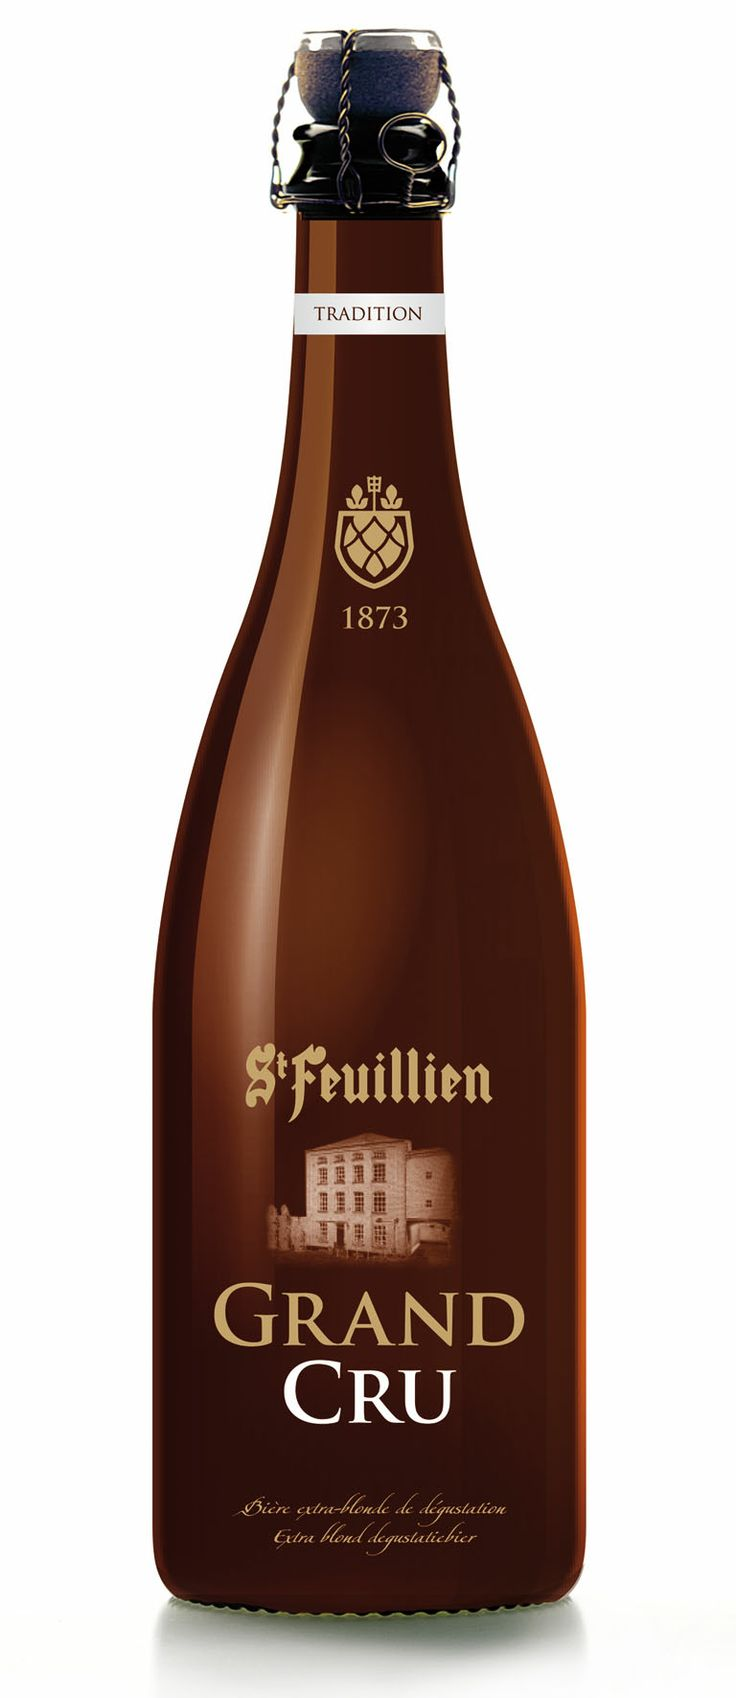 "Beer ""St-Feuillien Grand Cru"" from the brewery located in Le Roeulx"